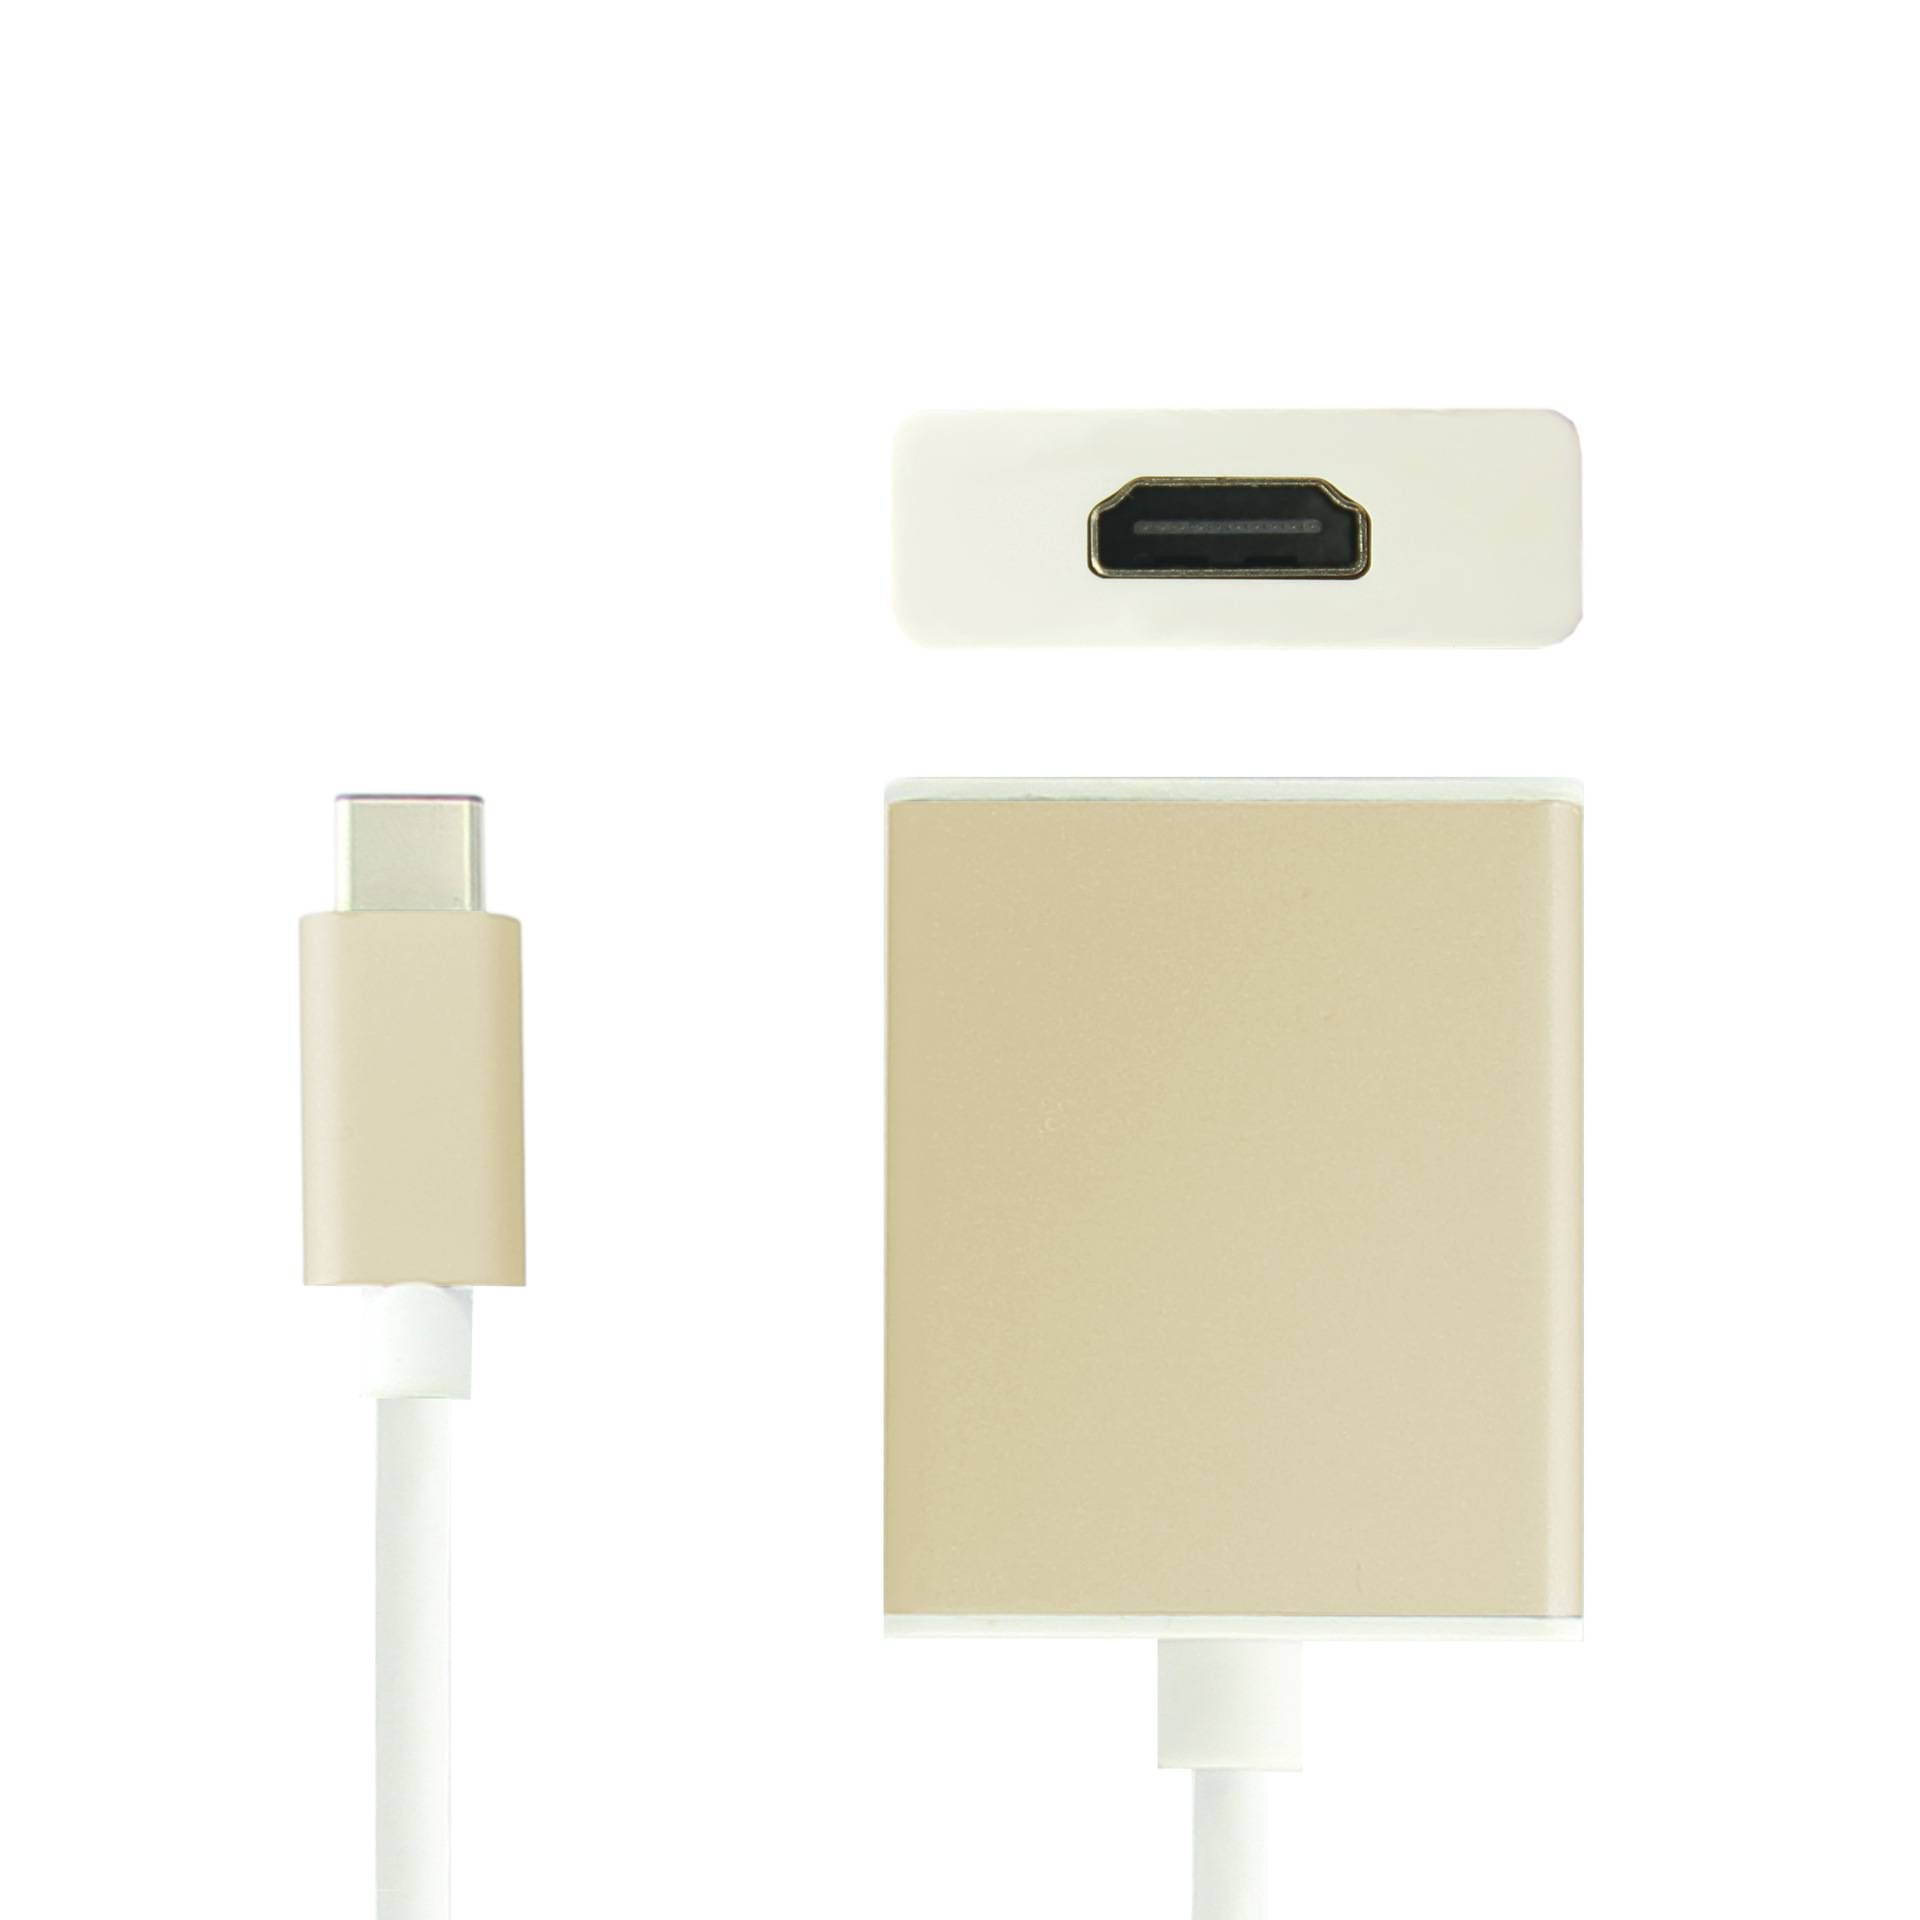 USB 3.1 Type- C to HDMI Adapter